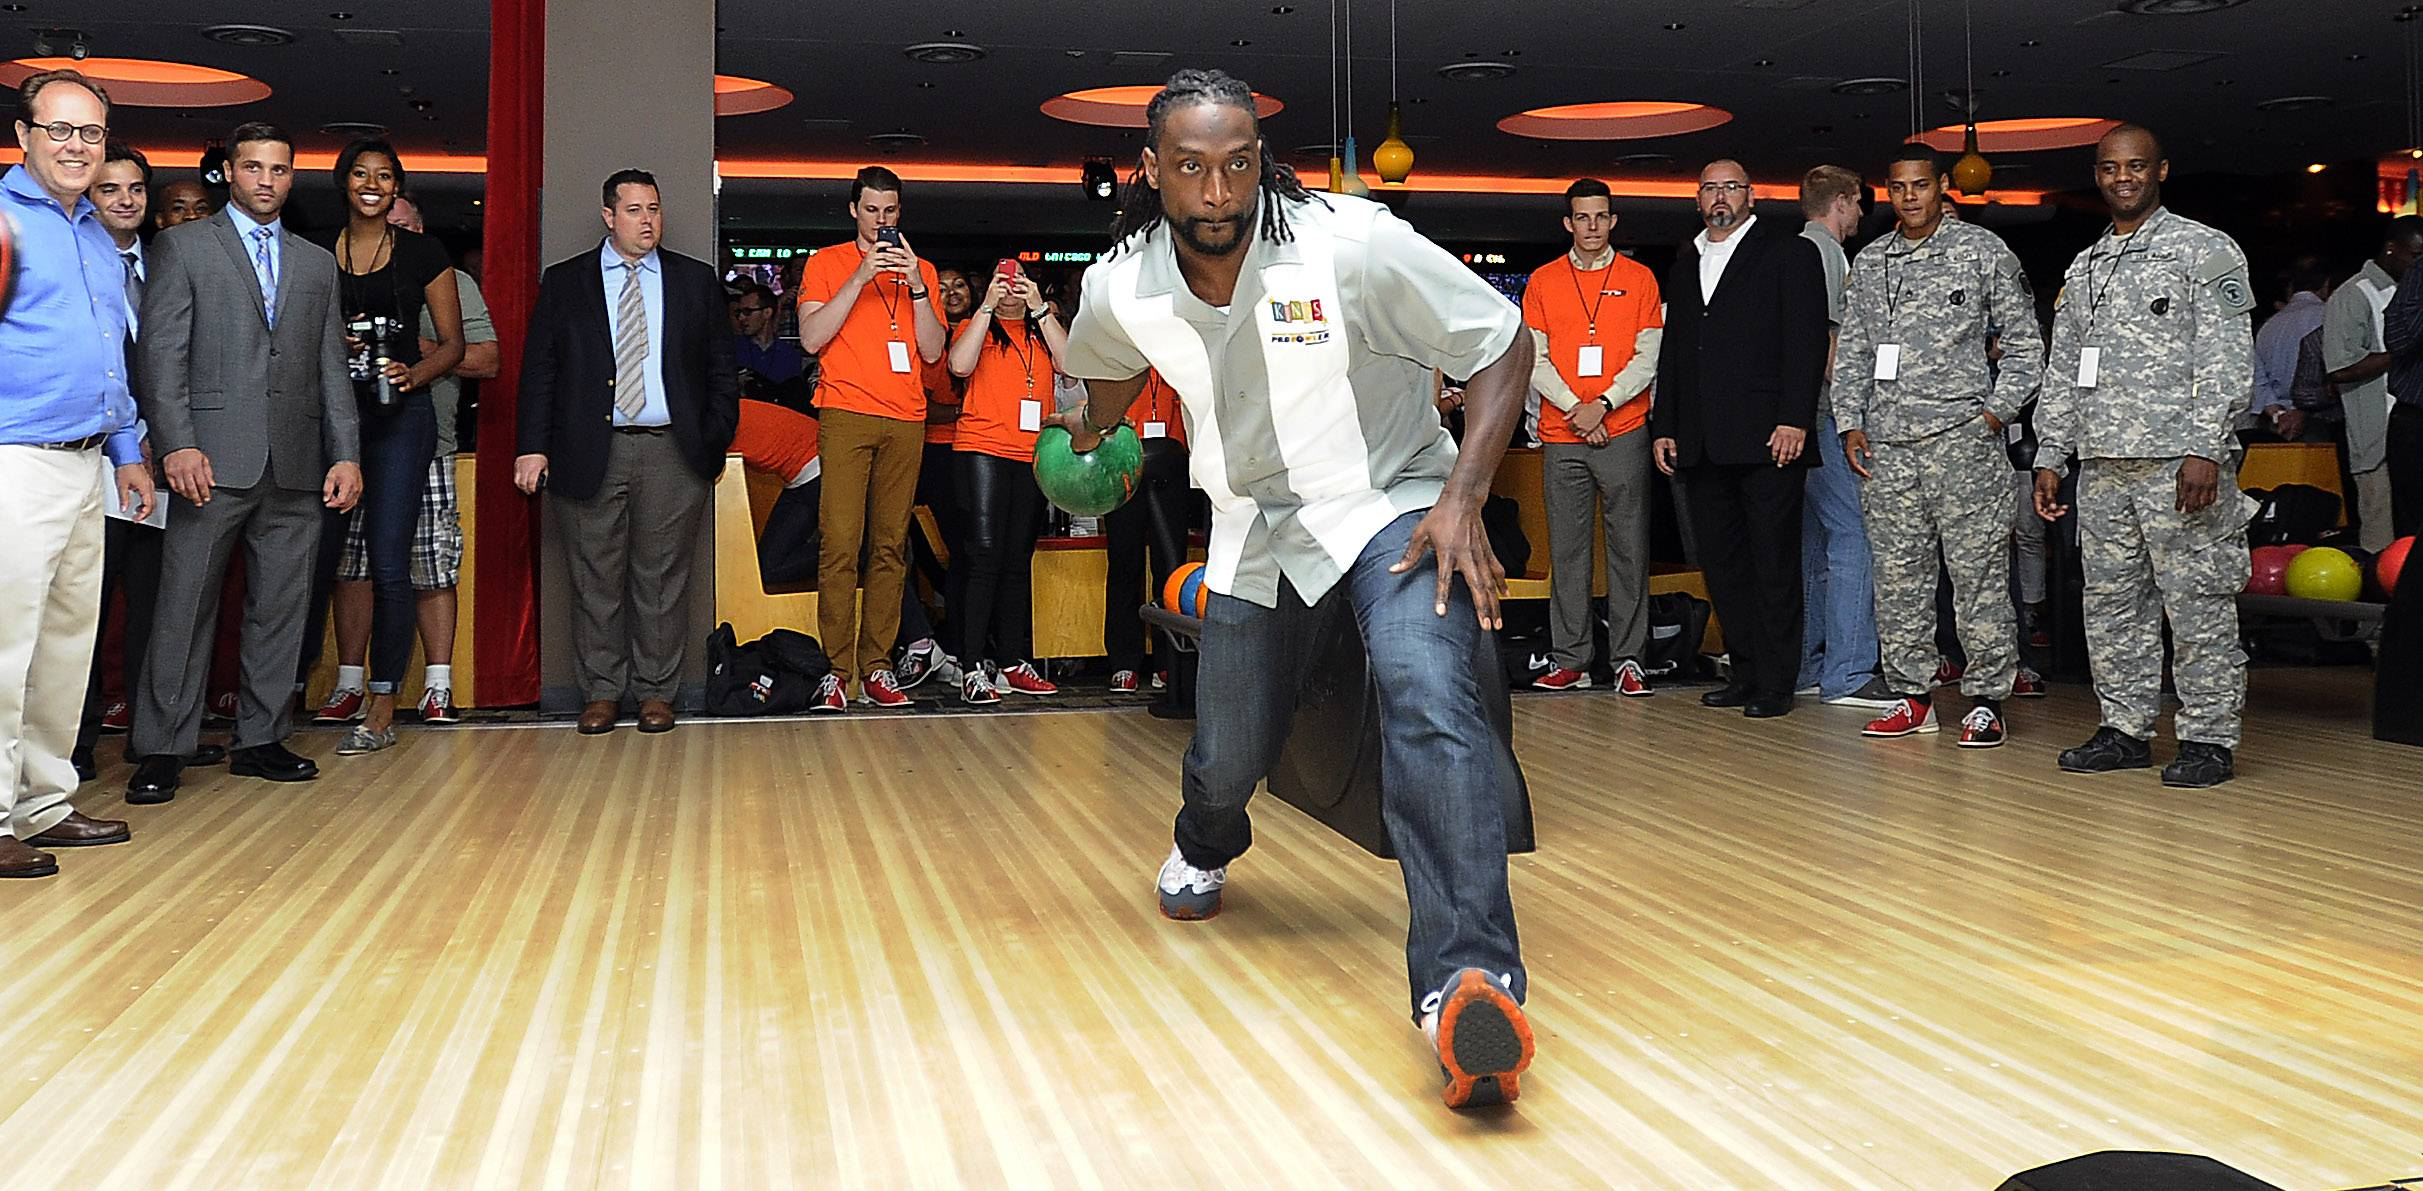 Chicago Bear Charles Tillman throws his bowling ball down the alley as he kicks off the third annual Charles Tillman Celebrity Pro Bowler Tournament at Kings Lanes in Rosemont on Thursday.